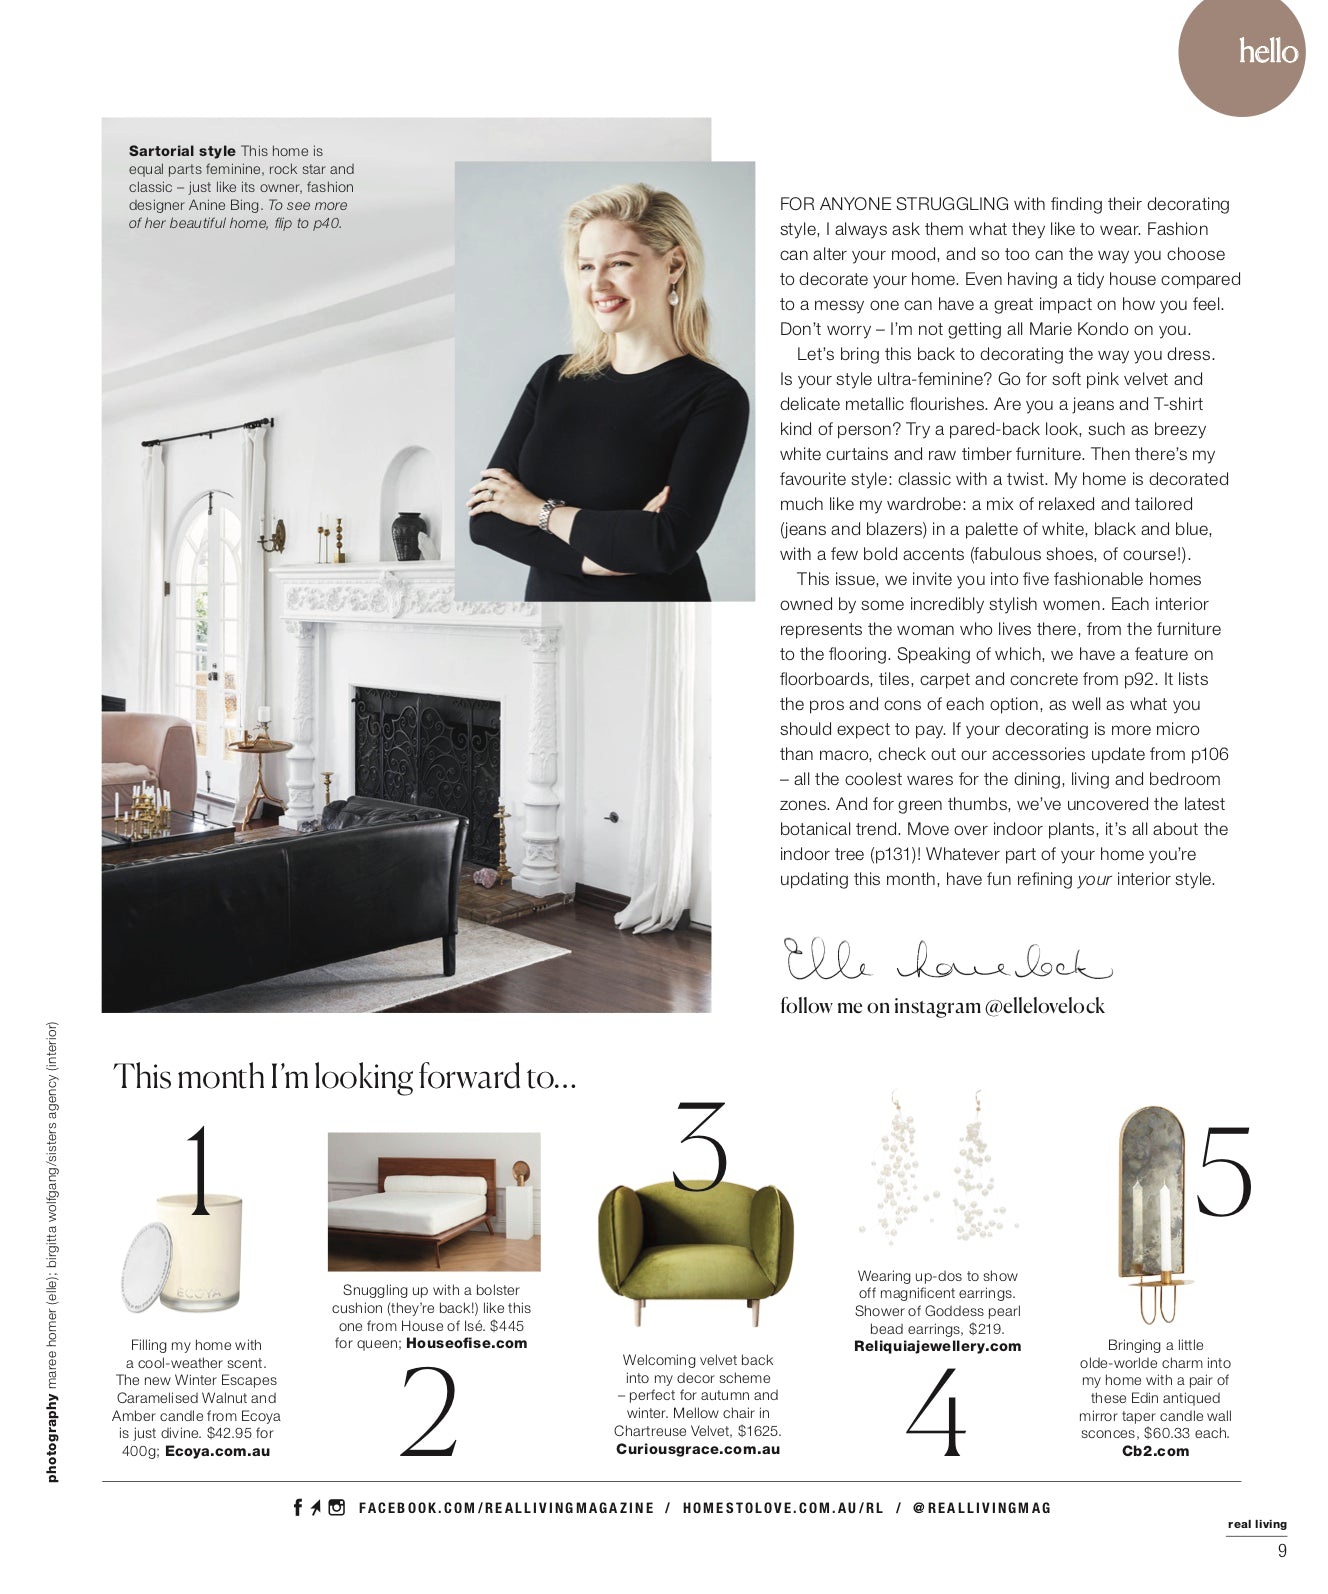 Press - Real Living Magazine - Editor's page - Elle Lovelock - organic linen bolster for the home - House of Ise